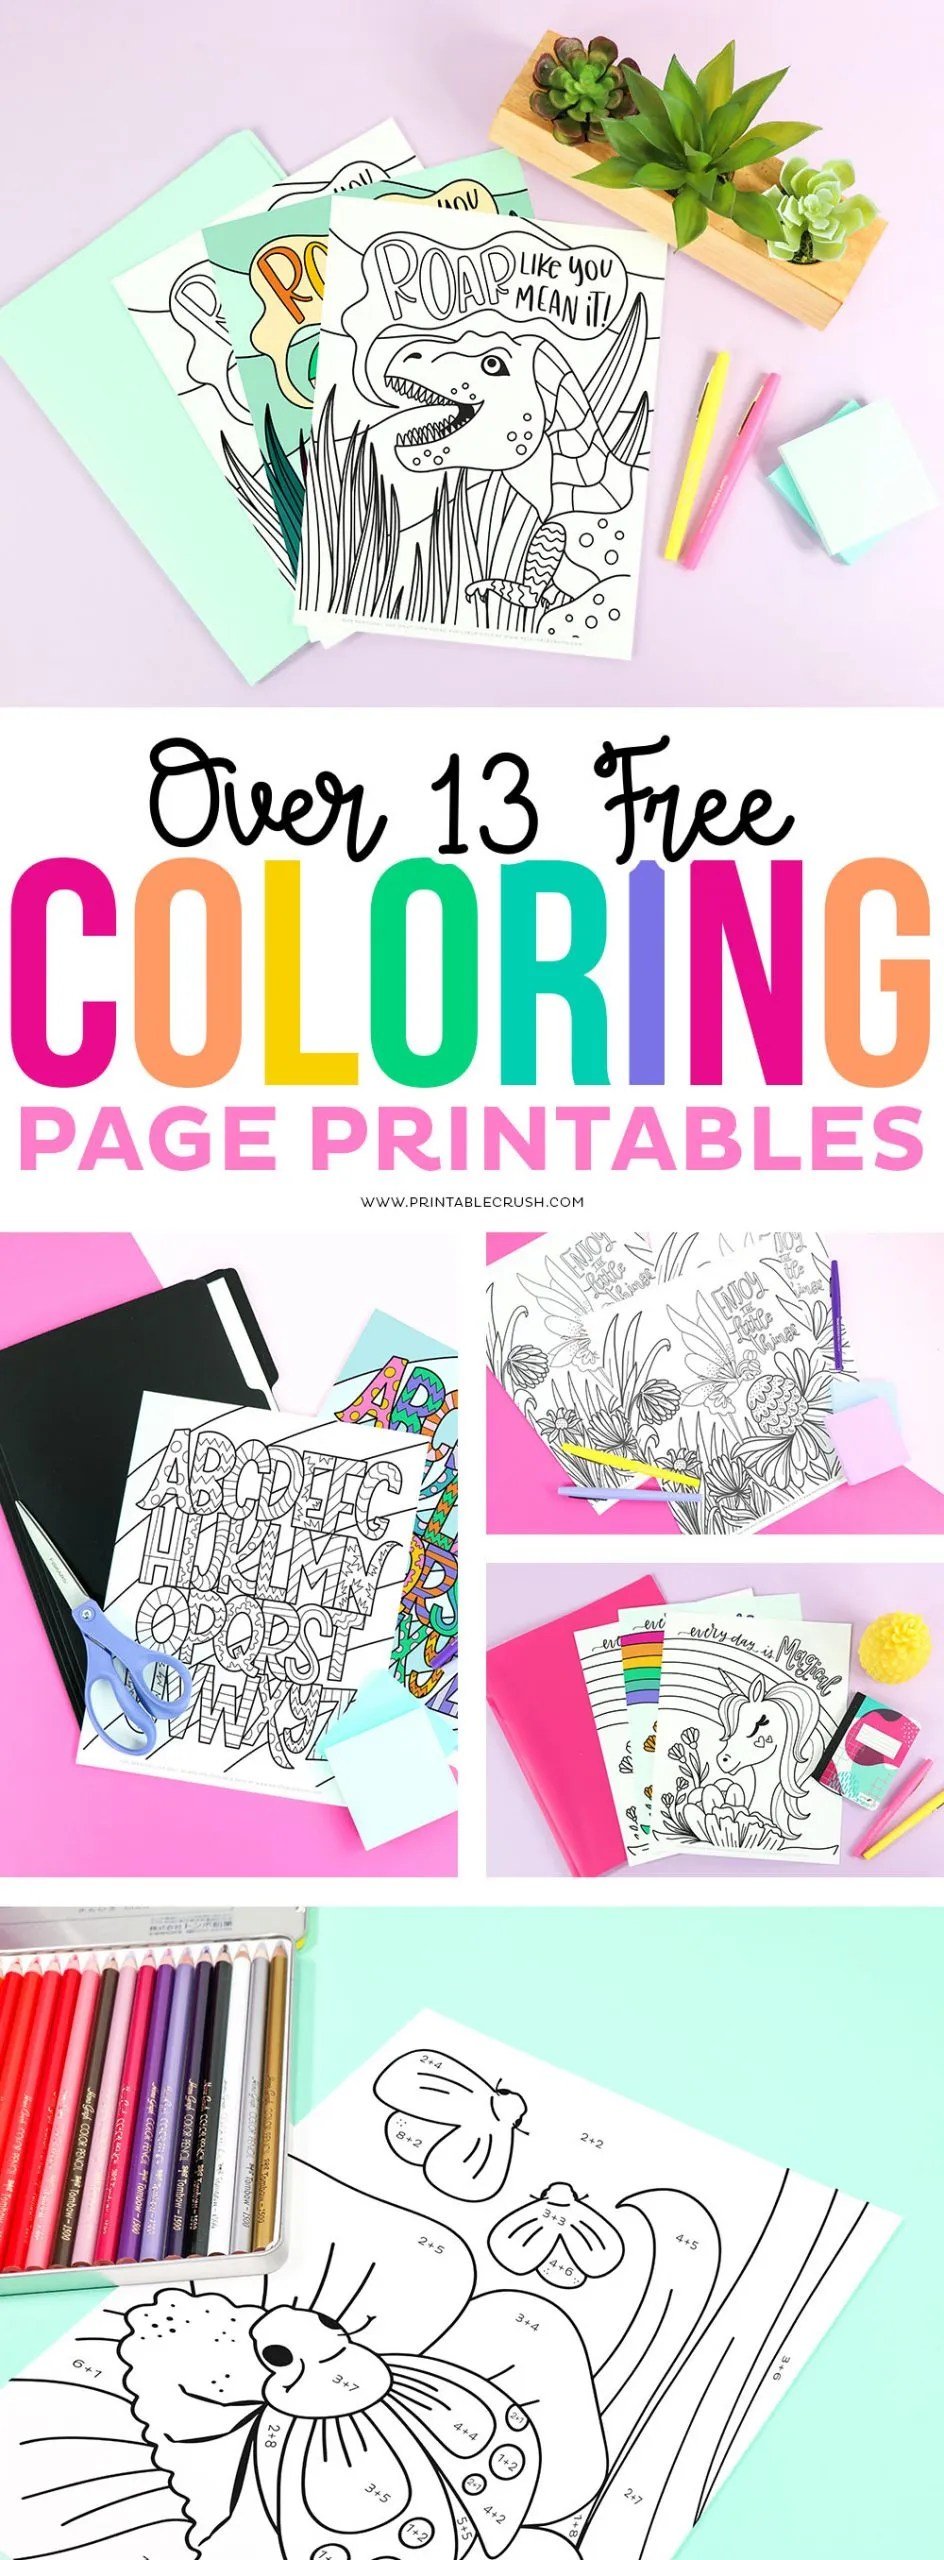 Over 13 FREE Printable Coloring Pages - Free Coloring Pages - Free Hand Drawn Coloring Pages - Printable Crush